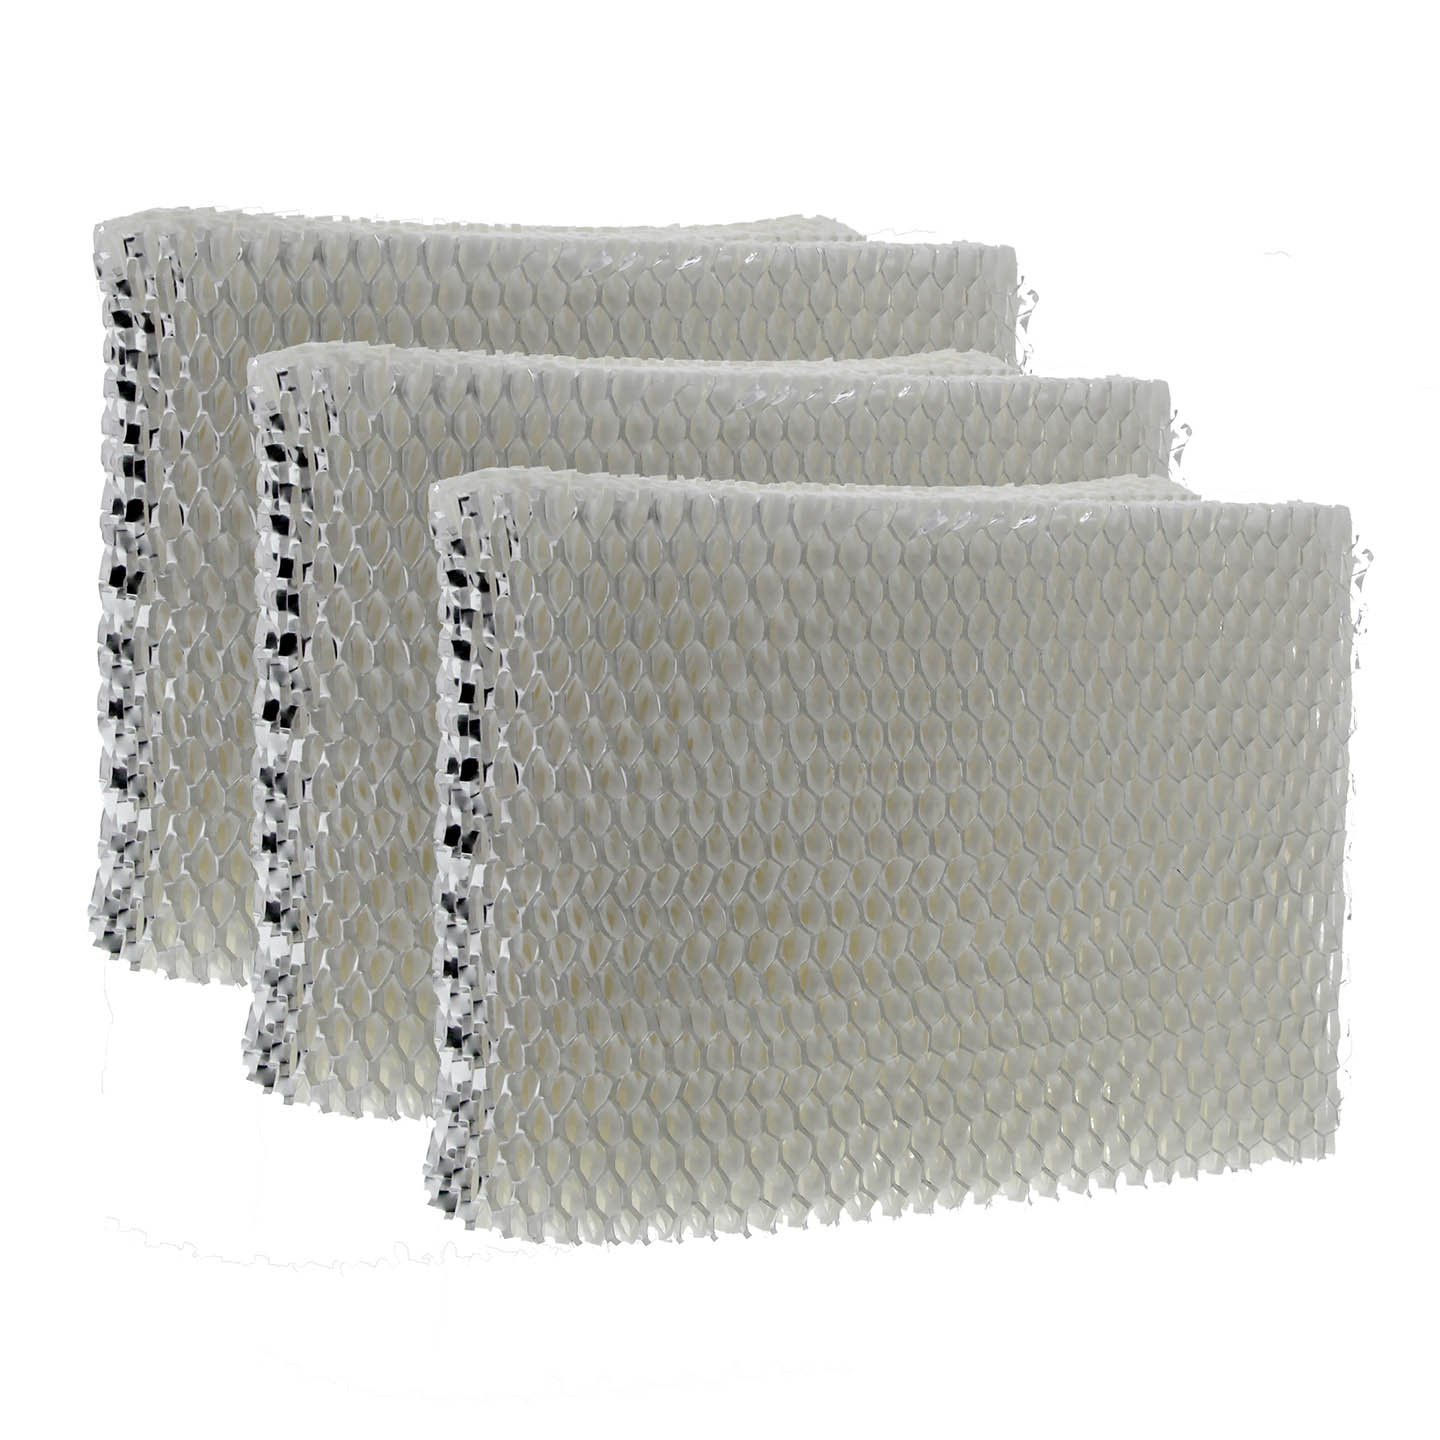 Tier1 Replacement for Emerson MAF1 14906 Models MA-0950, 1200, 1201 Humidifier Wick Filter 3 Pack by Tier1